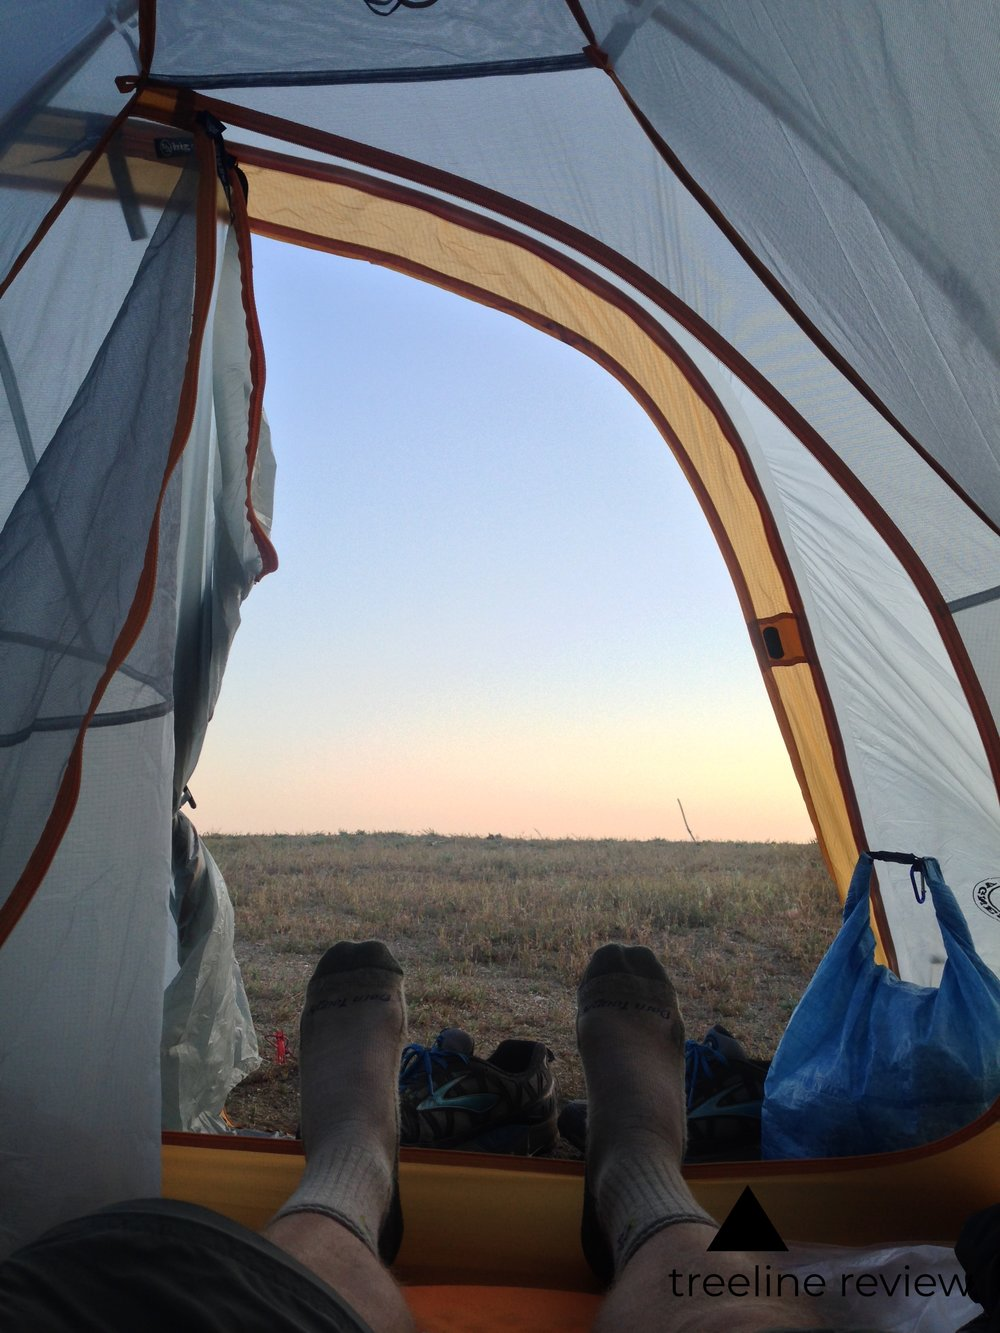 Curious what tents made the cut? - READ THE FULL COMPARATIVE REVIEW OF BACKPACKING TENTS HERE